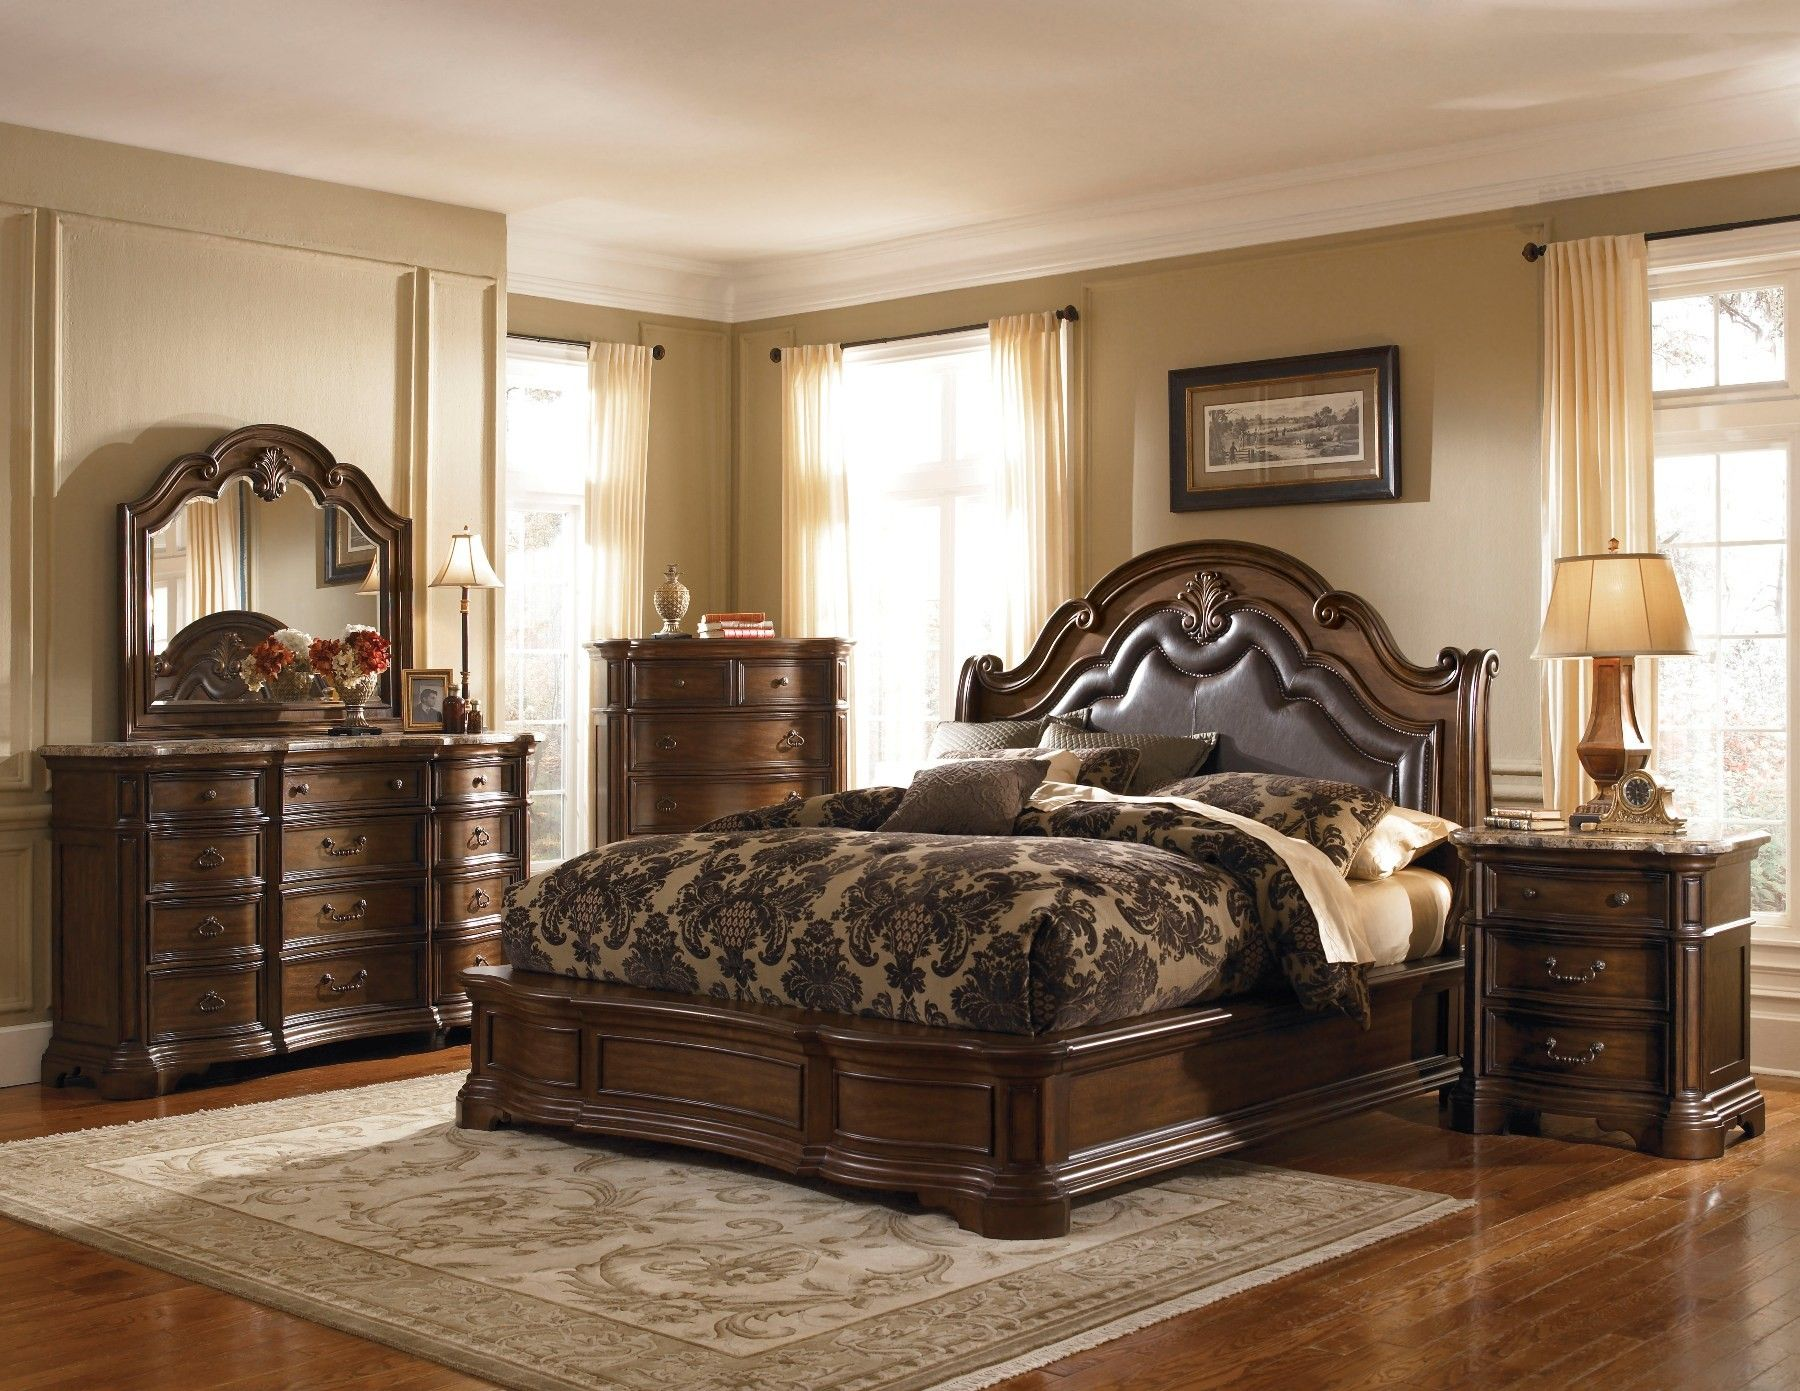 Pulaski Bedroom Furniture Wholesale Closeouts Courtland Bedroom